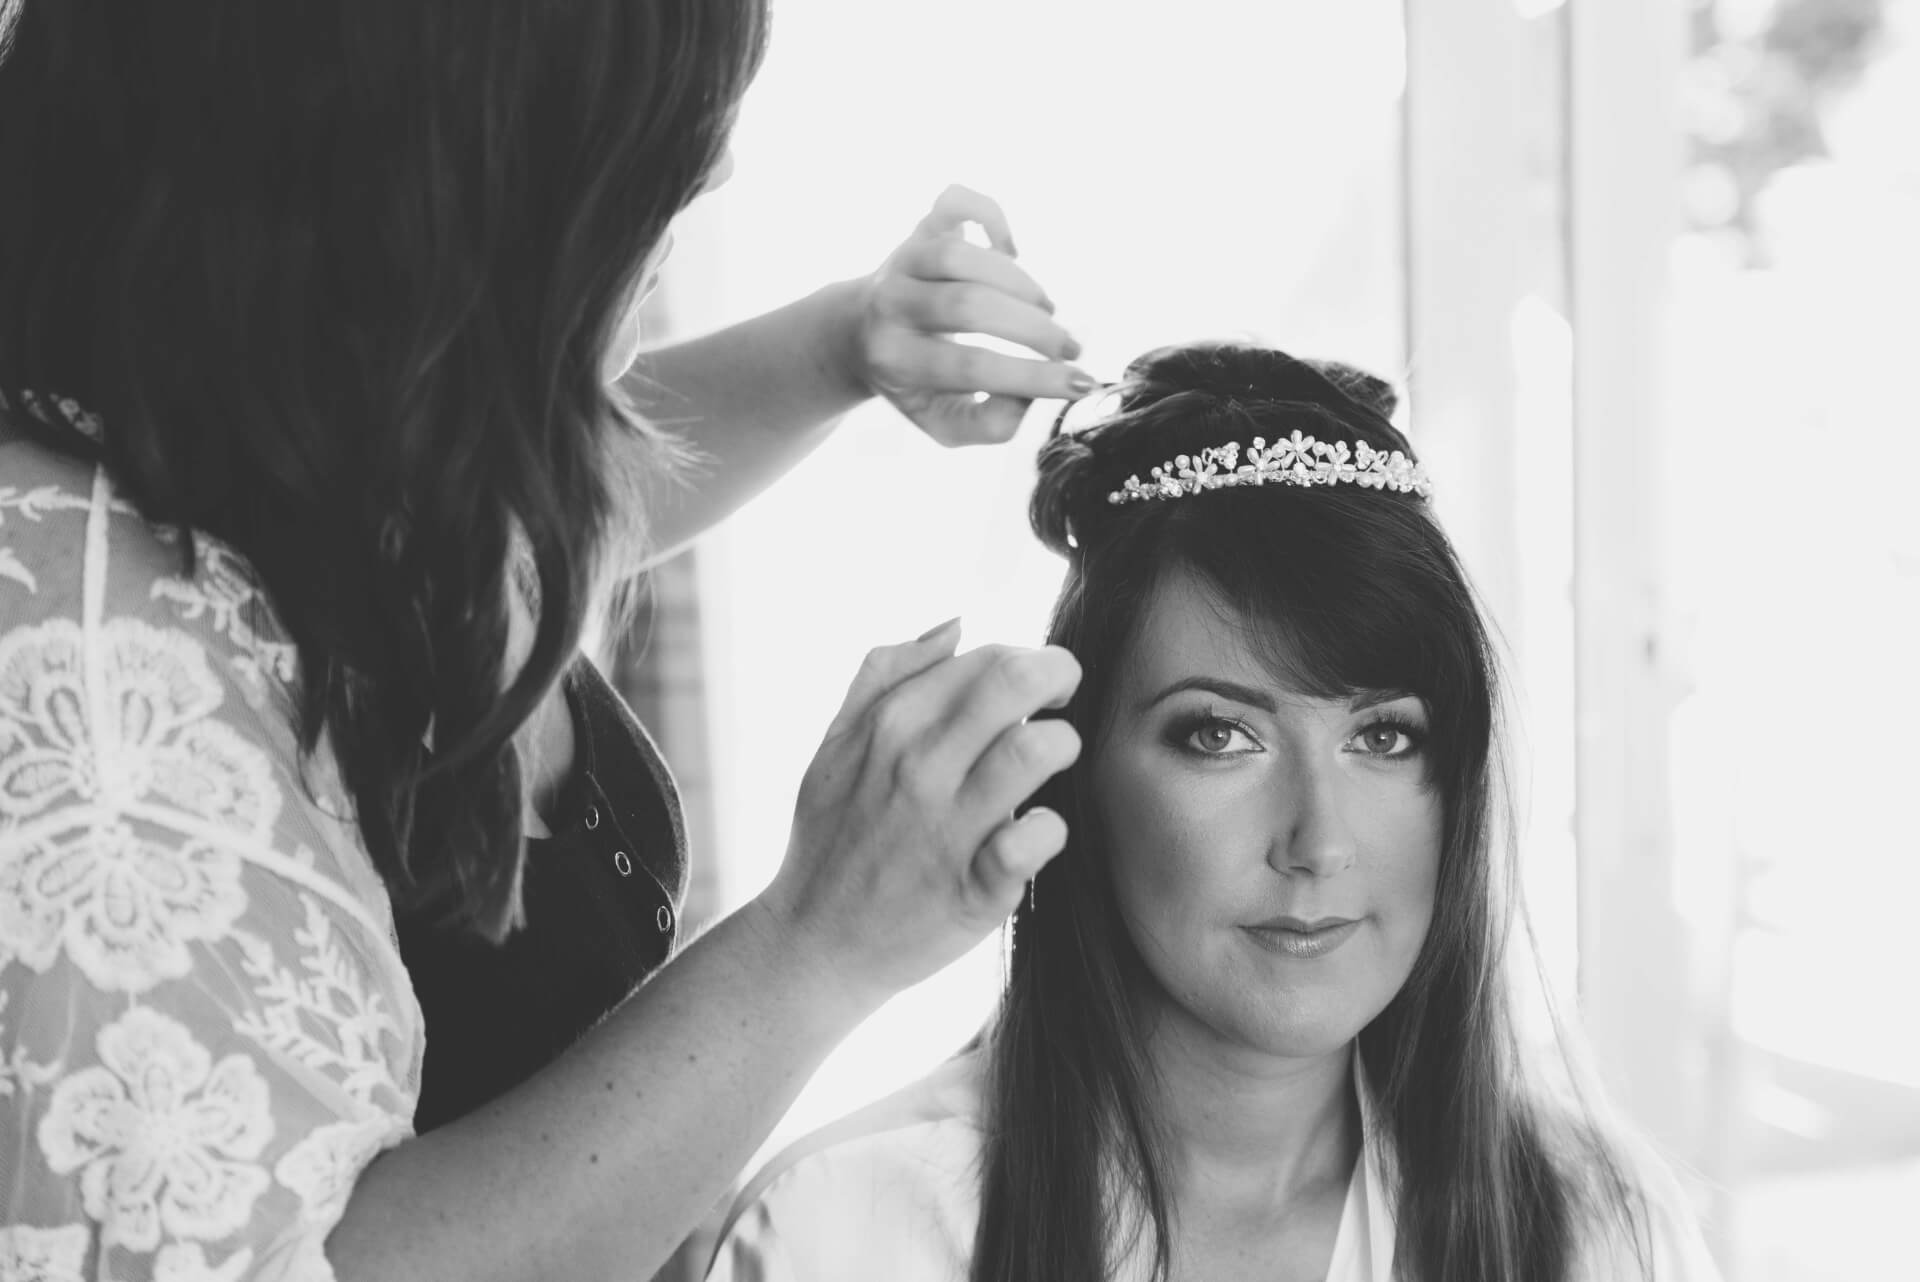 bridal hair preparations - Black and White Reportage wedding photos by Lincolnshire wedding photographer Slice of Life Photography